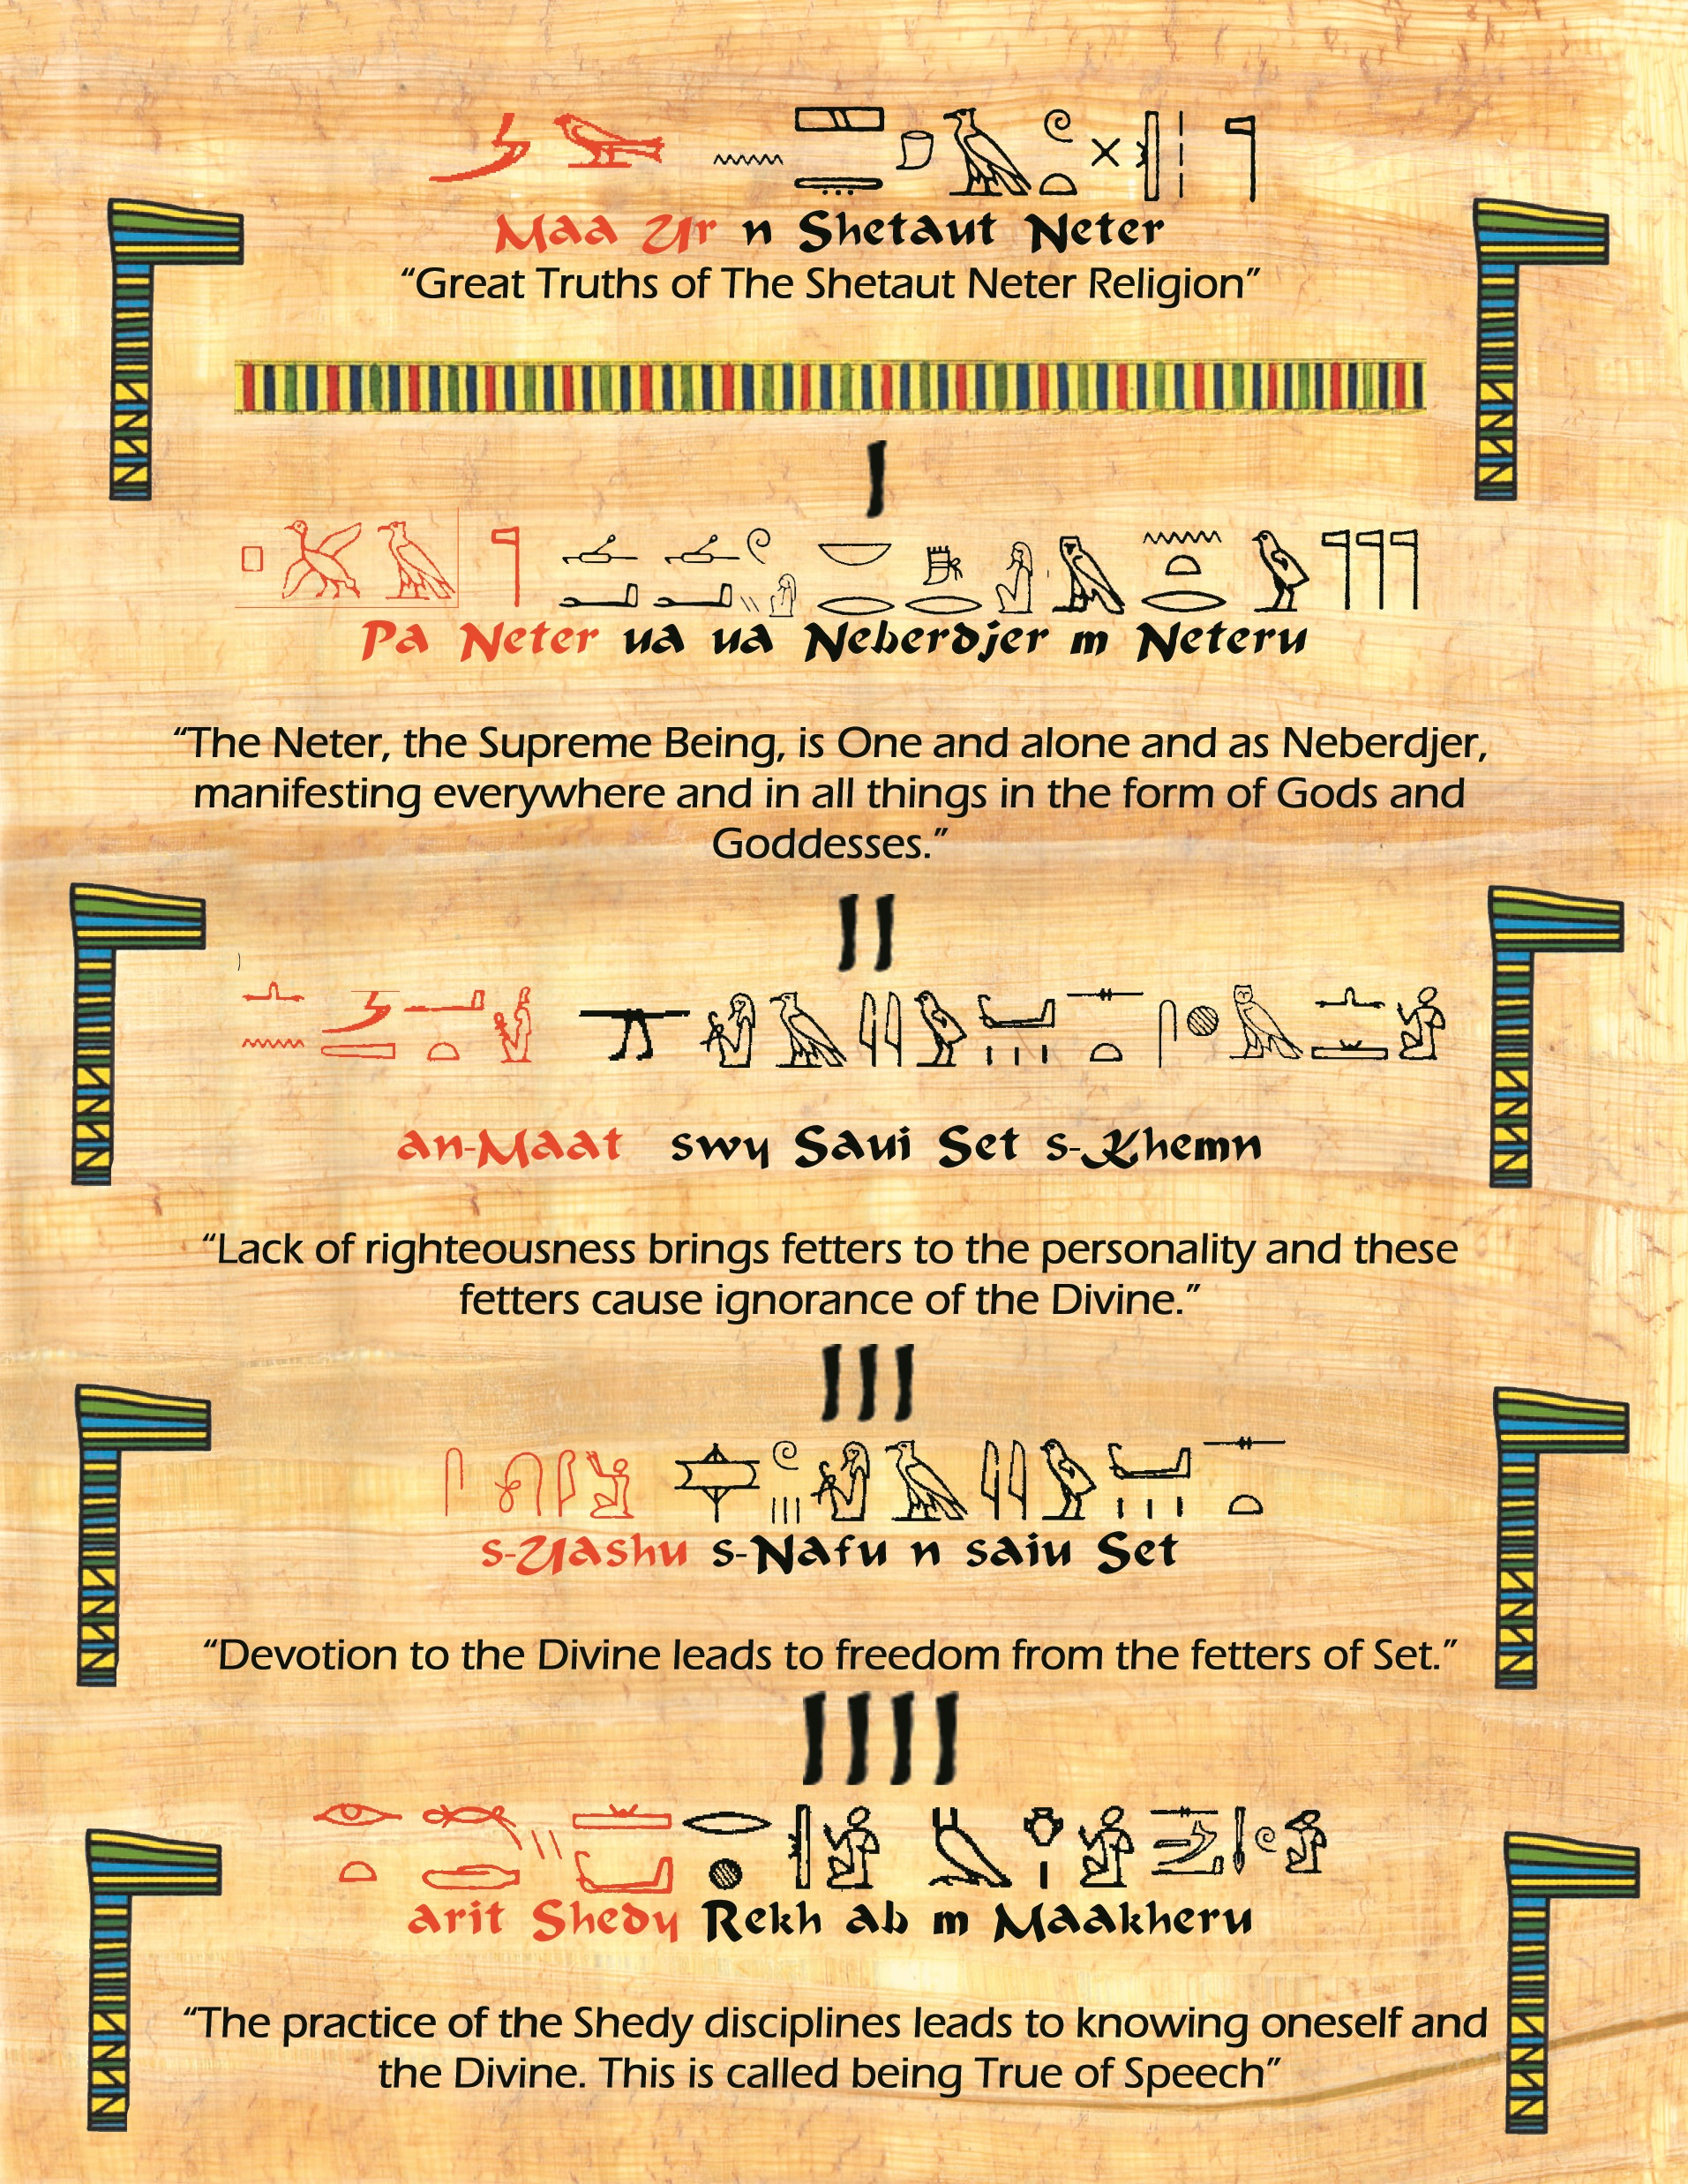 Great Truth of Shetaut Neter scroll B papyrus